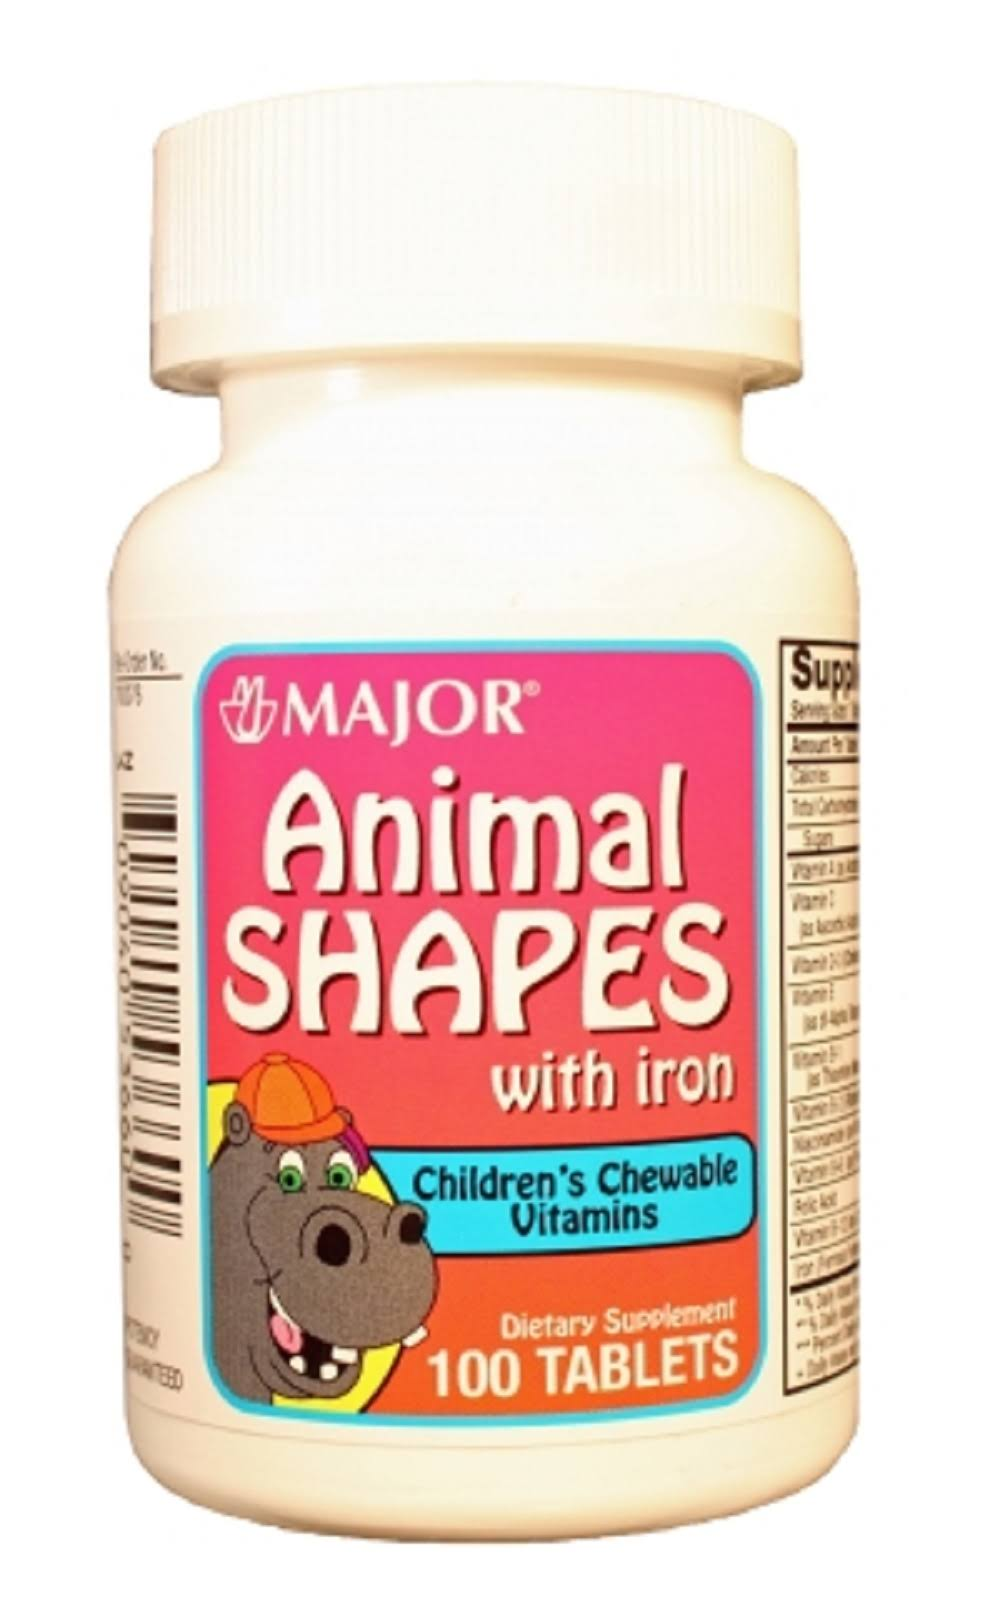 Major Animal Shapes With Iron Children's Chewable Vitamins - 100 Tablets